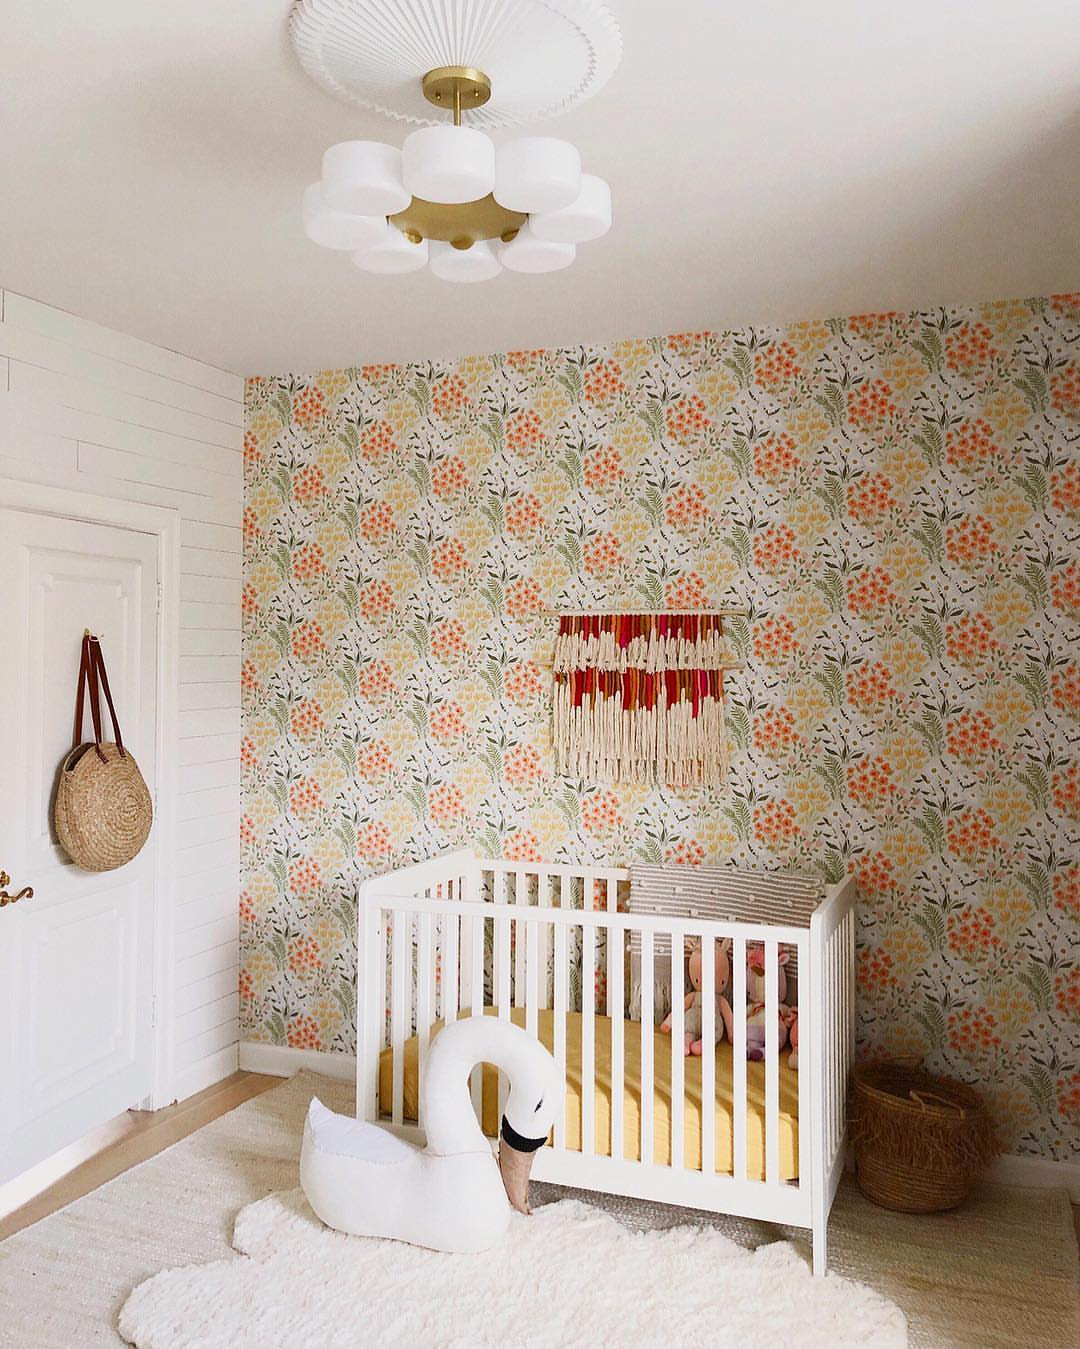 Nursery tour from A Beautiful Mess